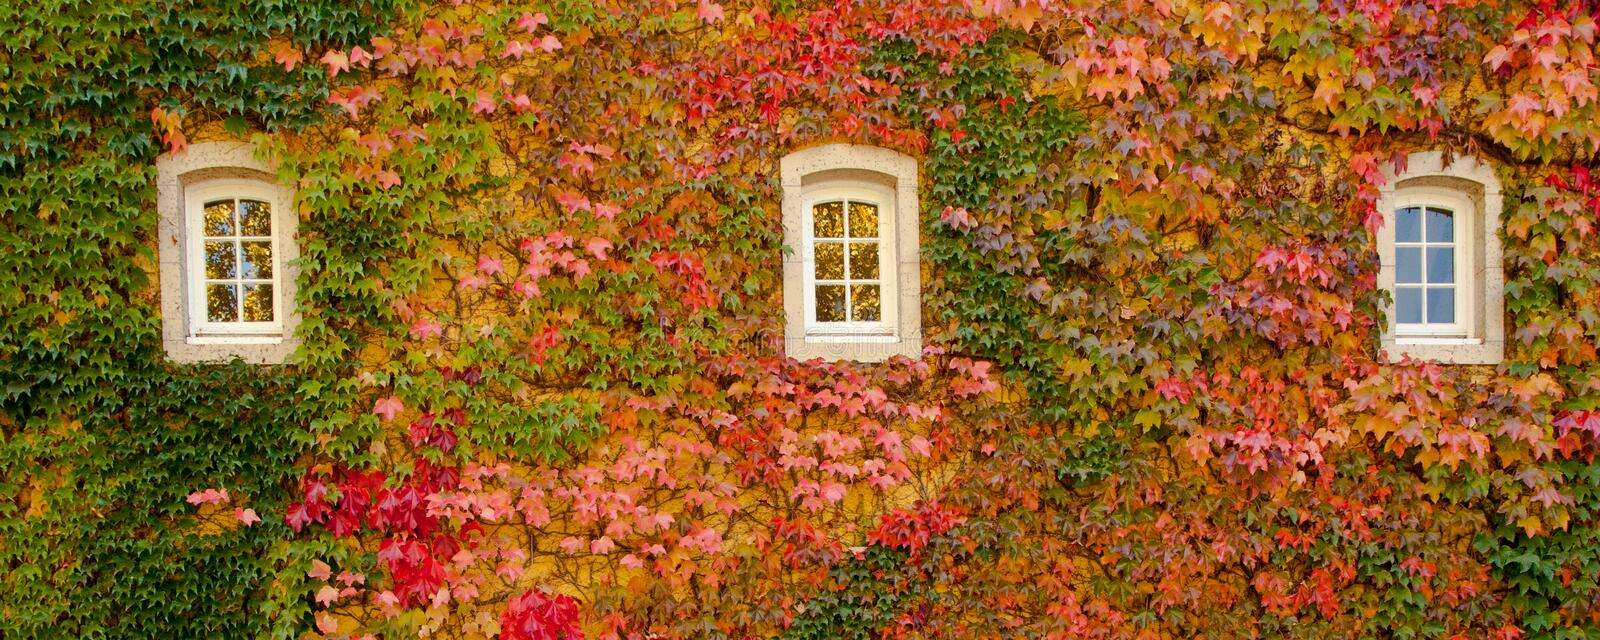 Ivy Covered Wall. Panoramic Composition of Boston Ivy Covered Wall With Three Windows in Fall Color royalty free stock image